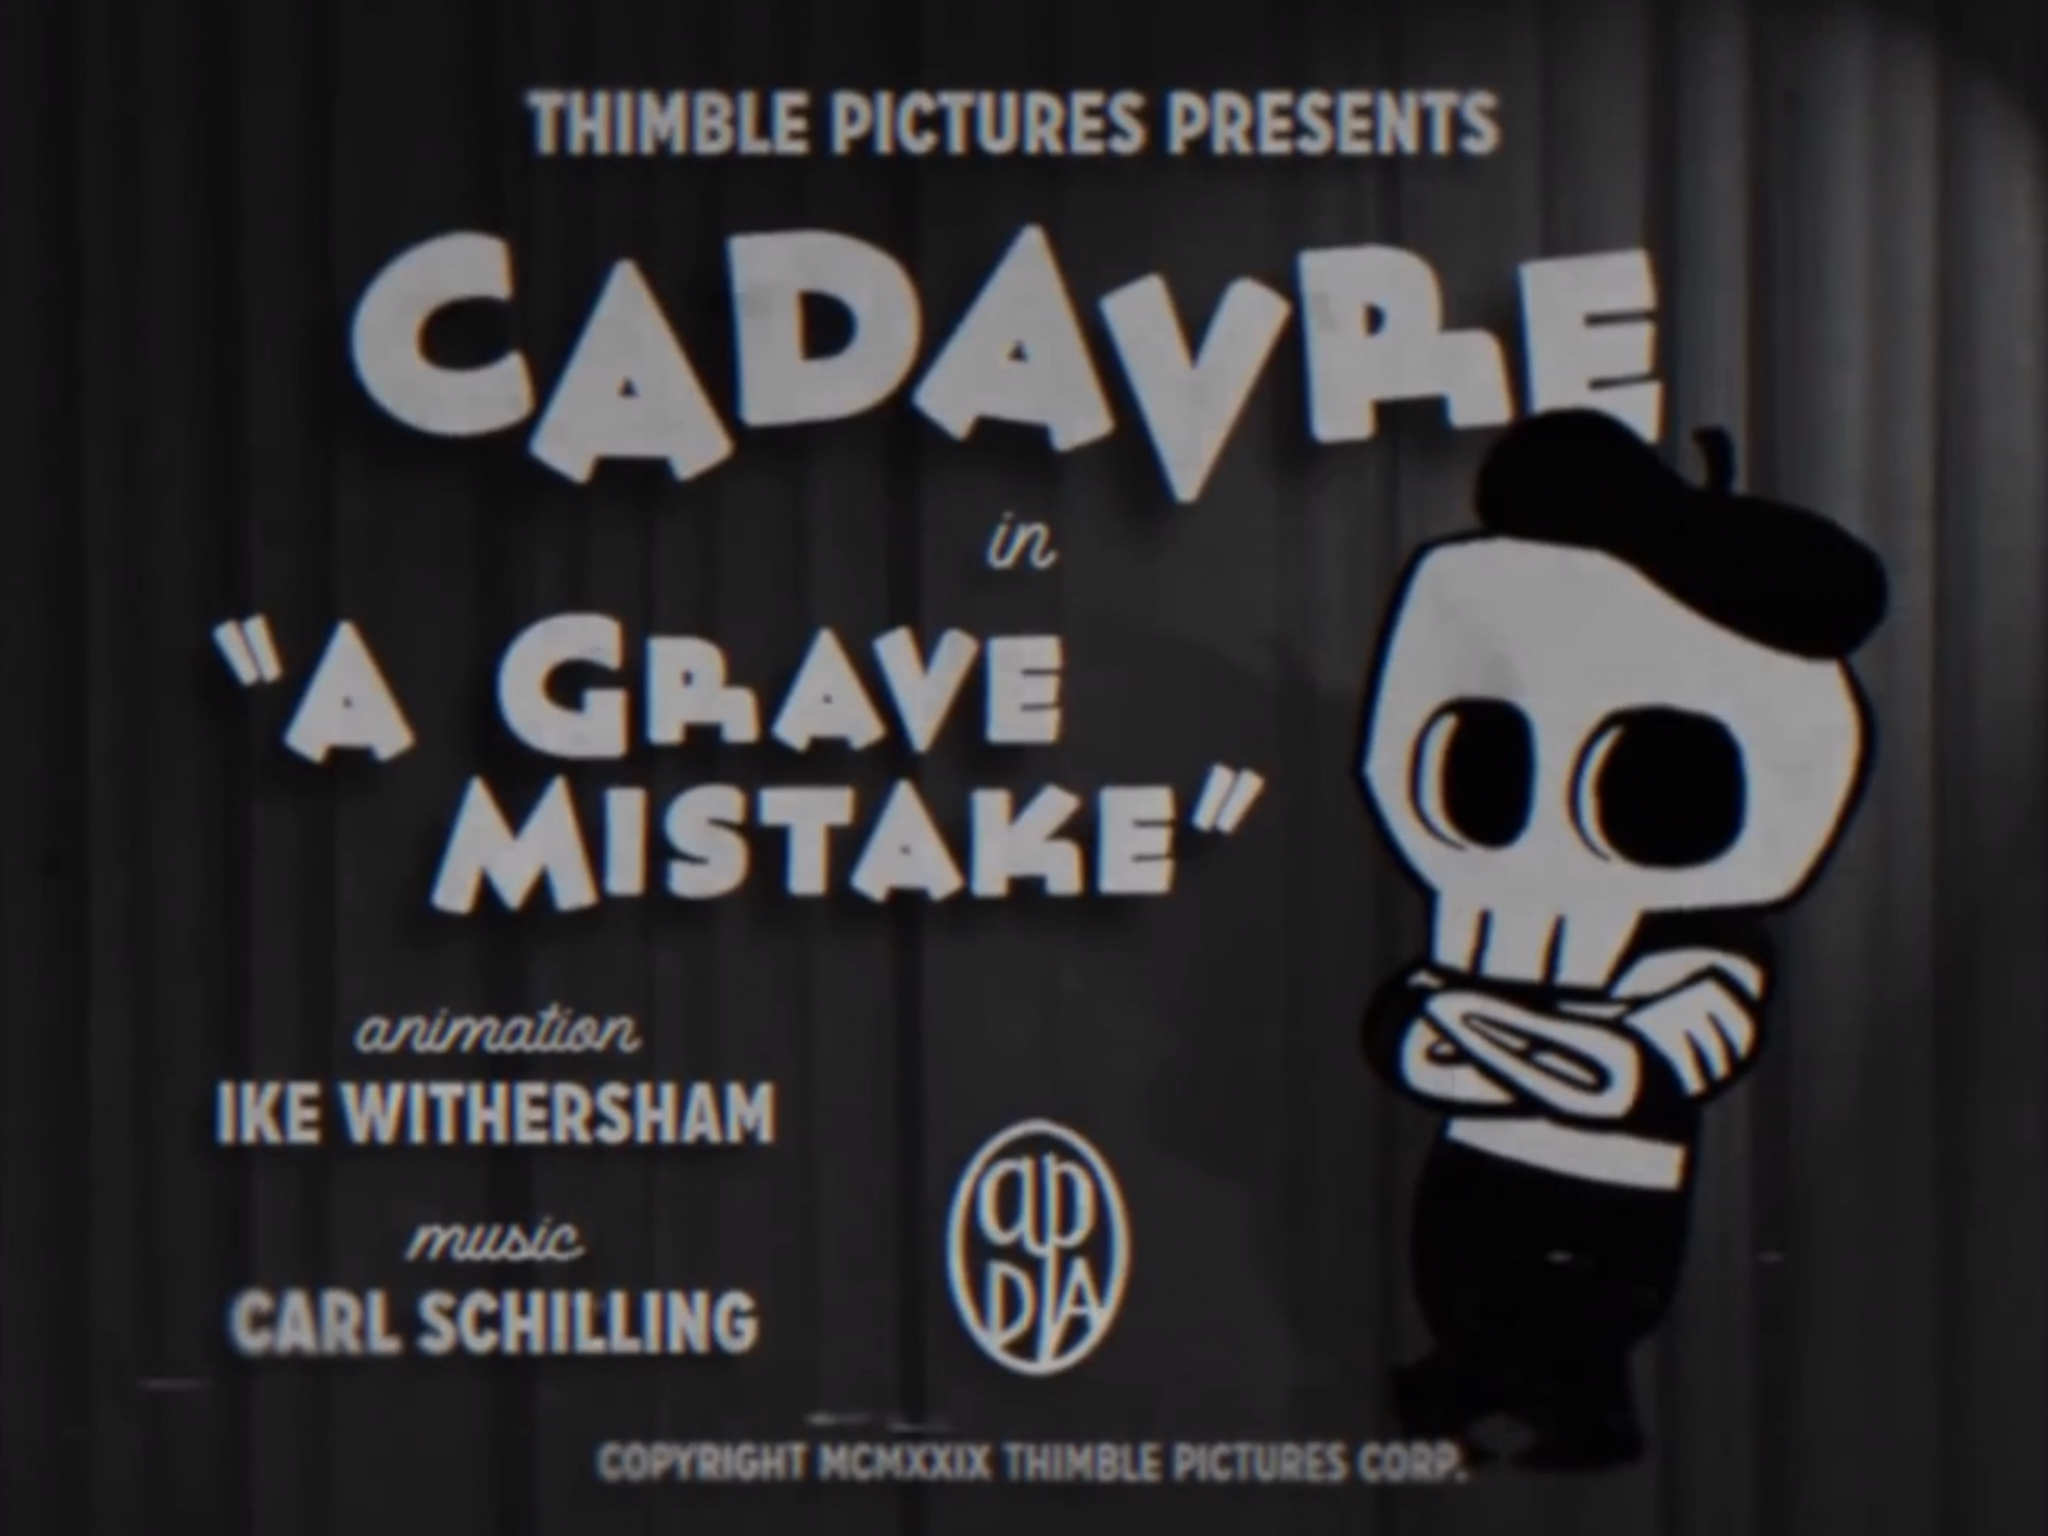 Cadavre (show) | Local 58 Wiki | FANDOM powered by Wikia